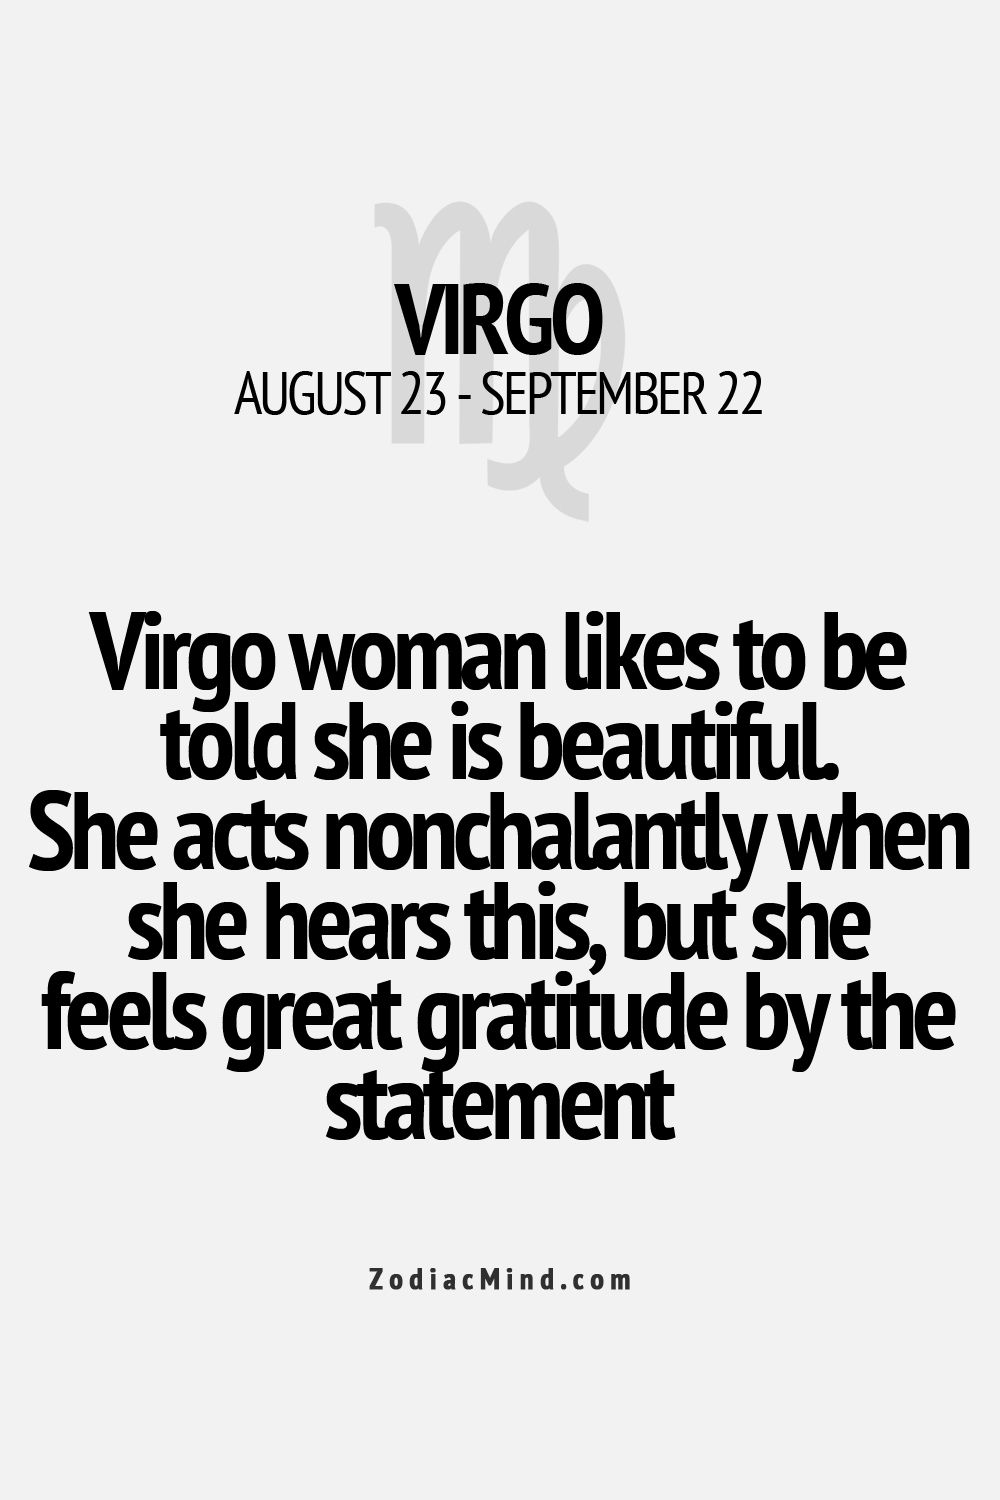 How to know if a virgo woman likes you